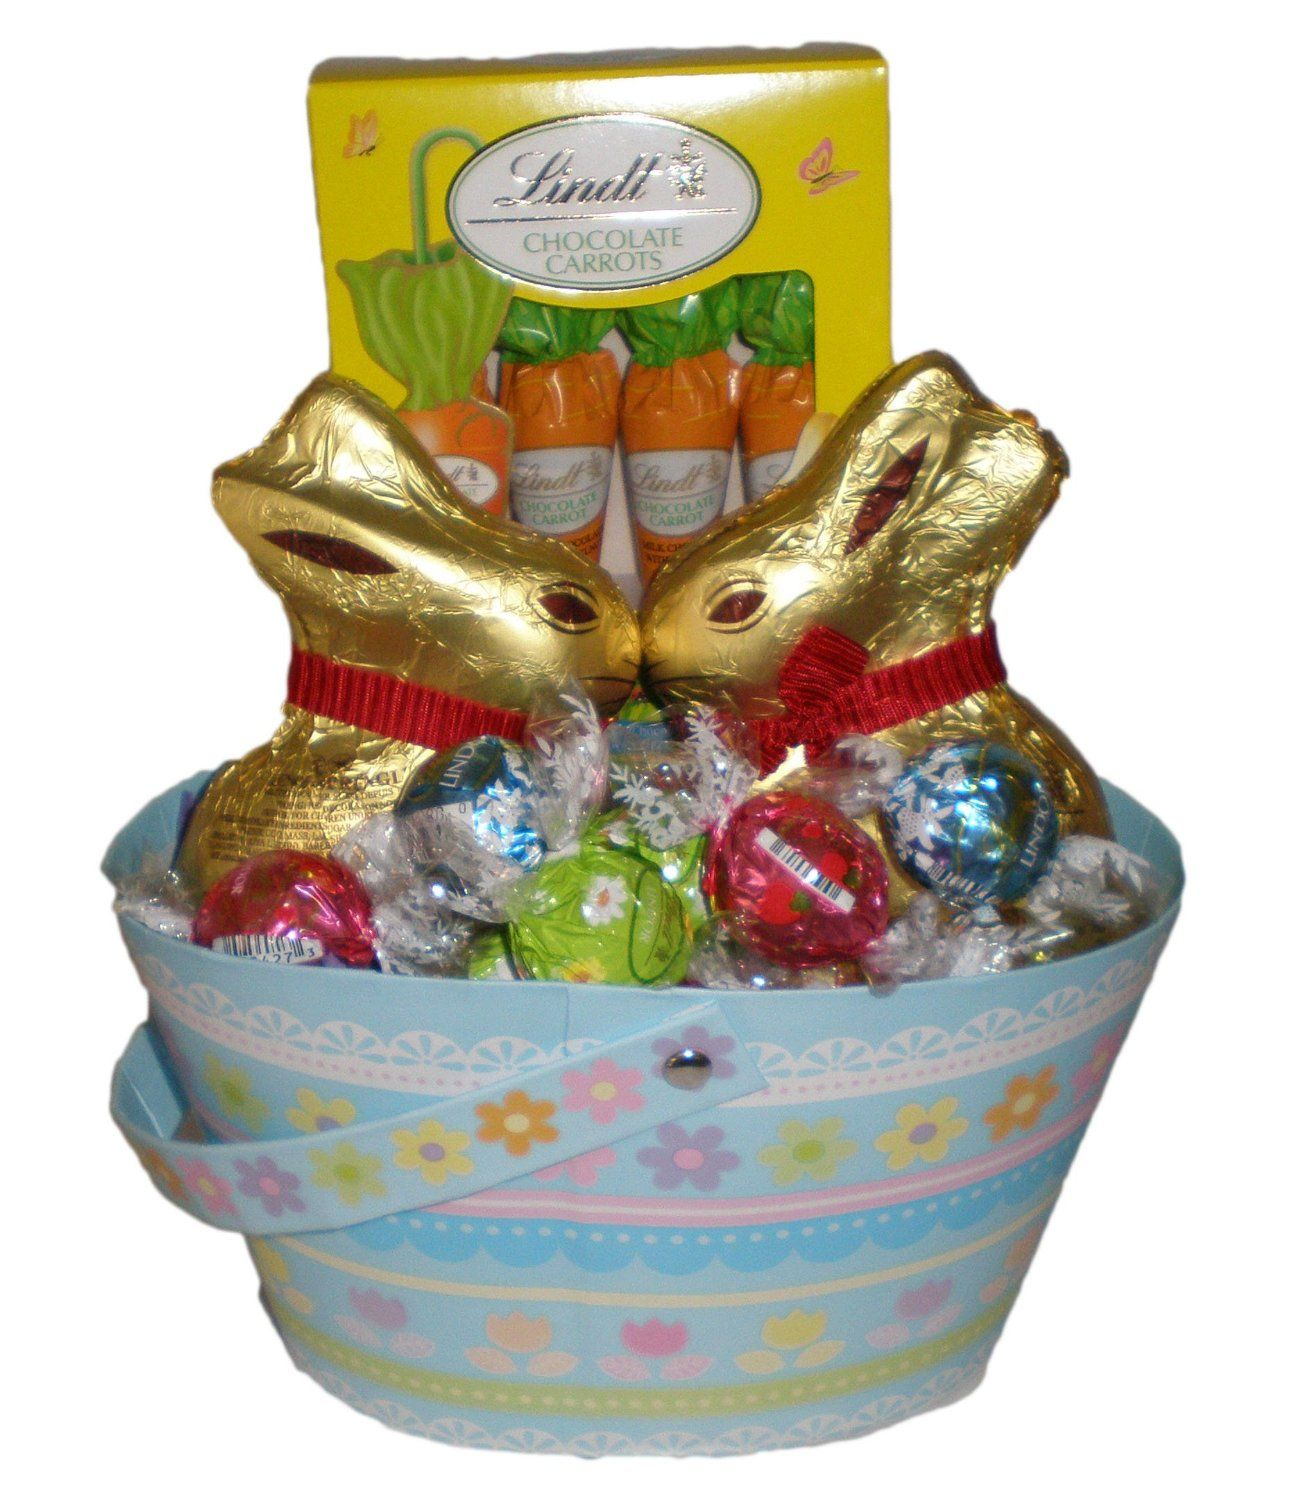 Happy easter lindt chocolate truffles bunnyand carrots gift happy easter lindt chocolate truffles bunnyand carrots gift basket amazon negle